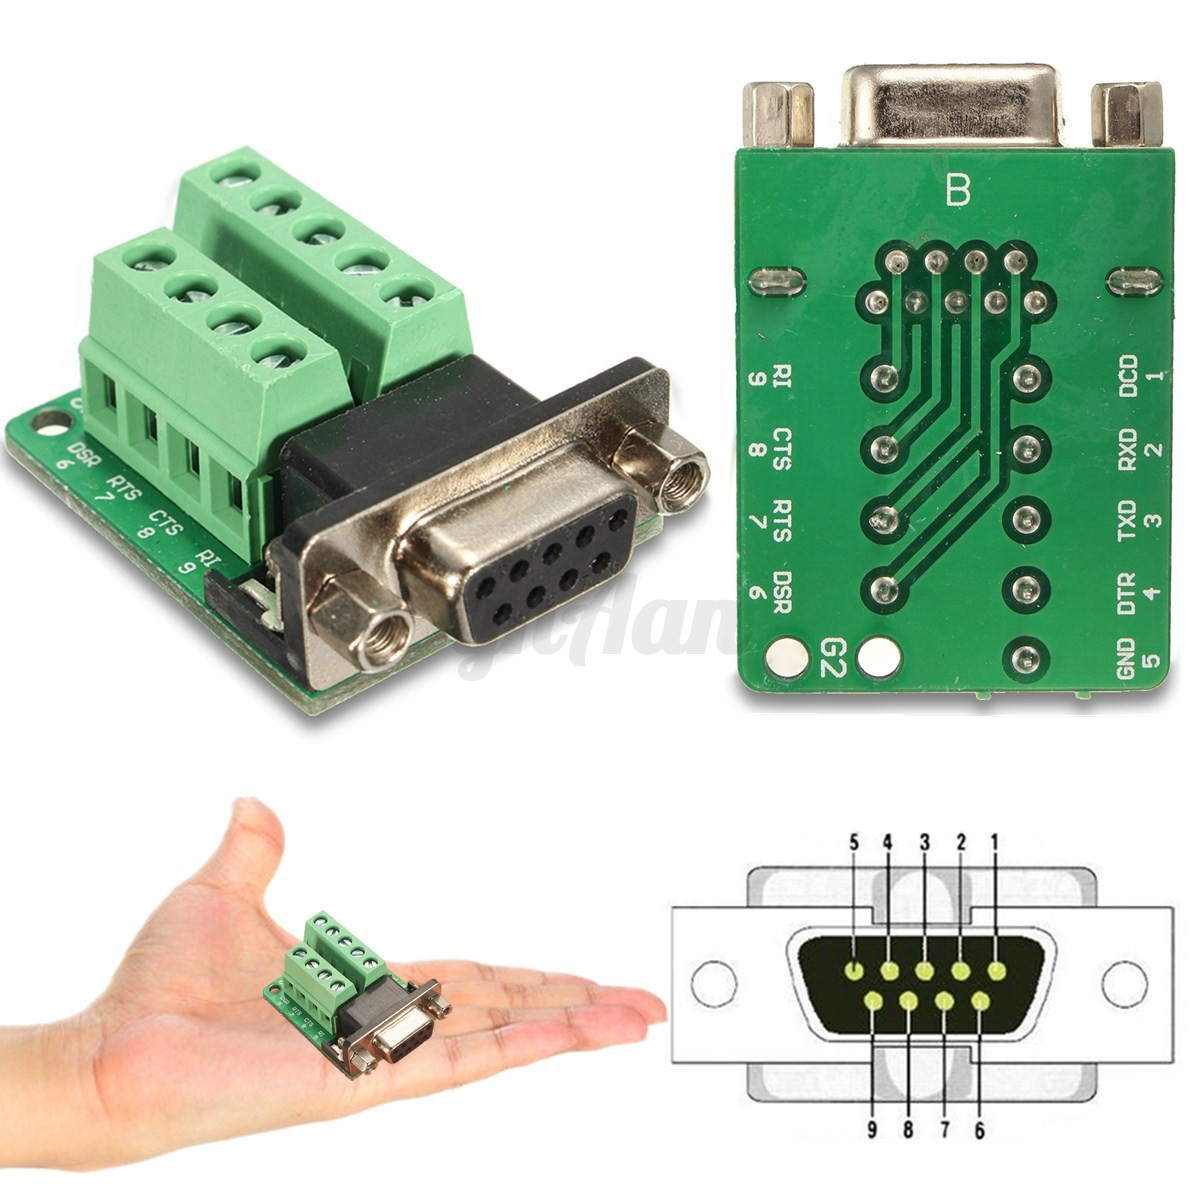 Connector db9 serial breakout